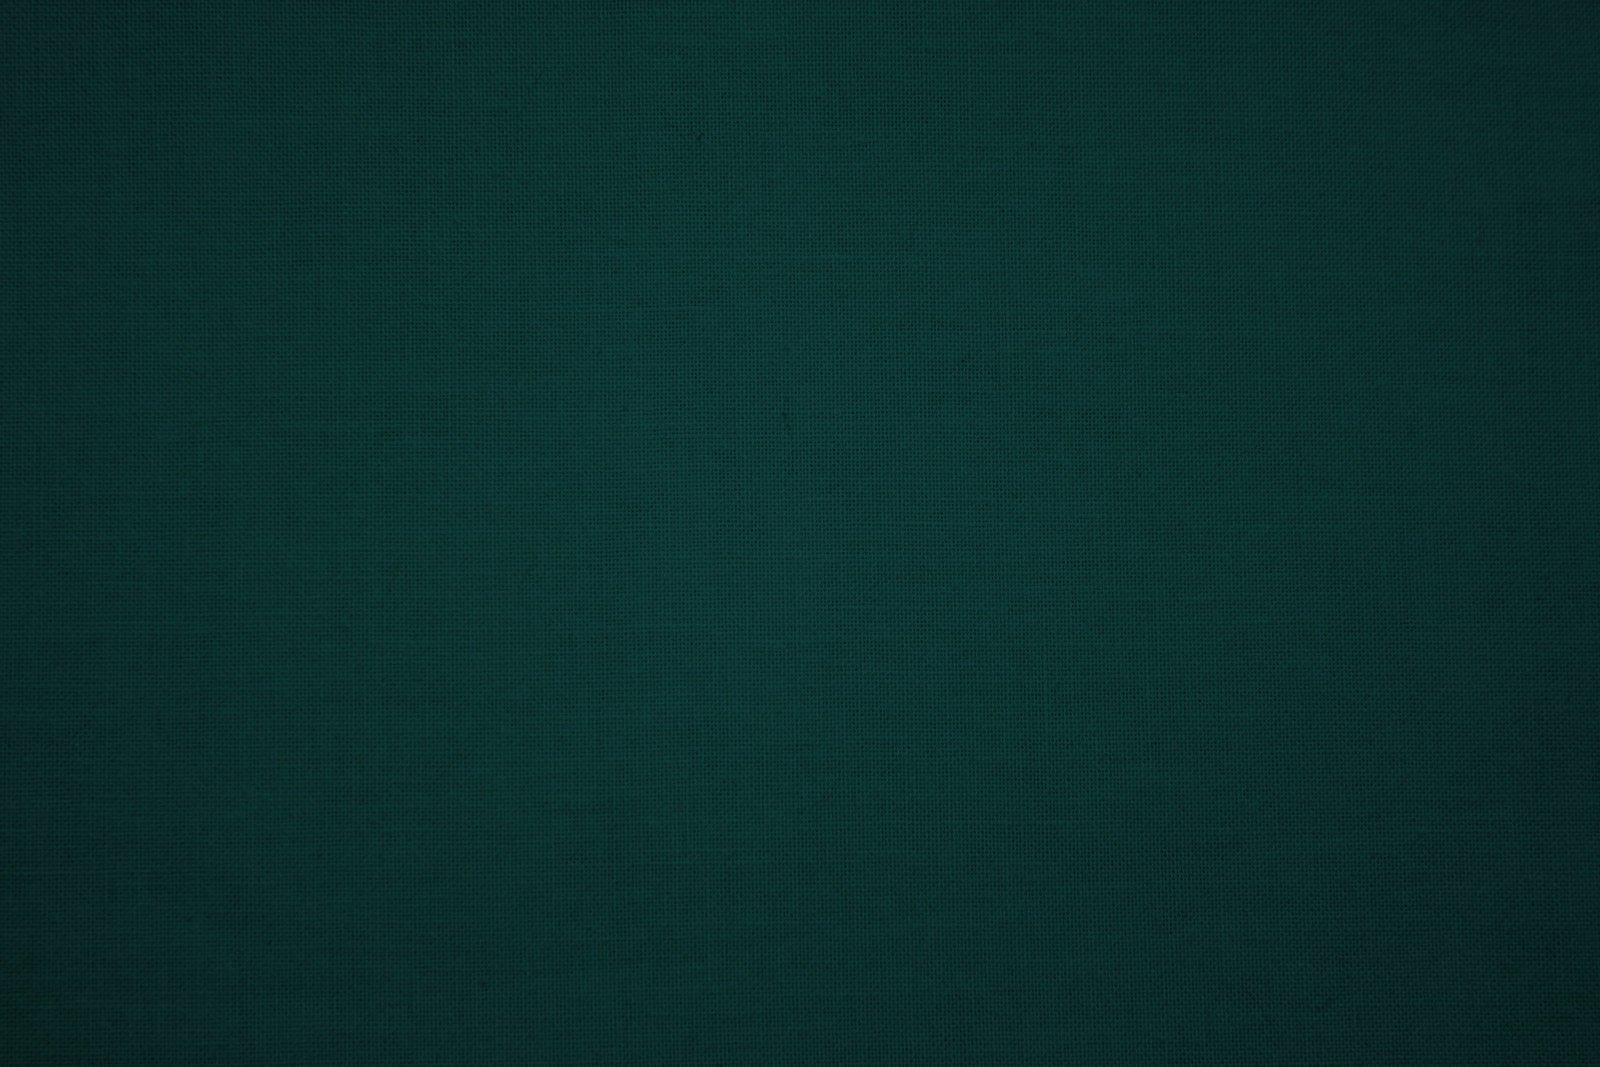 dark-teal-canvas-fabric-texture